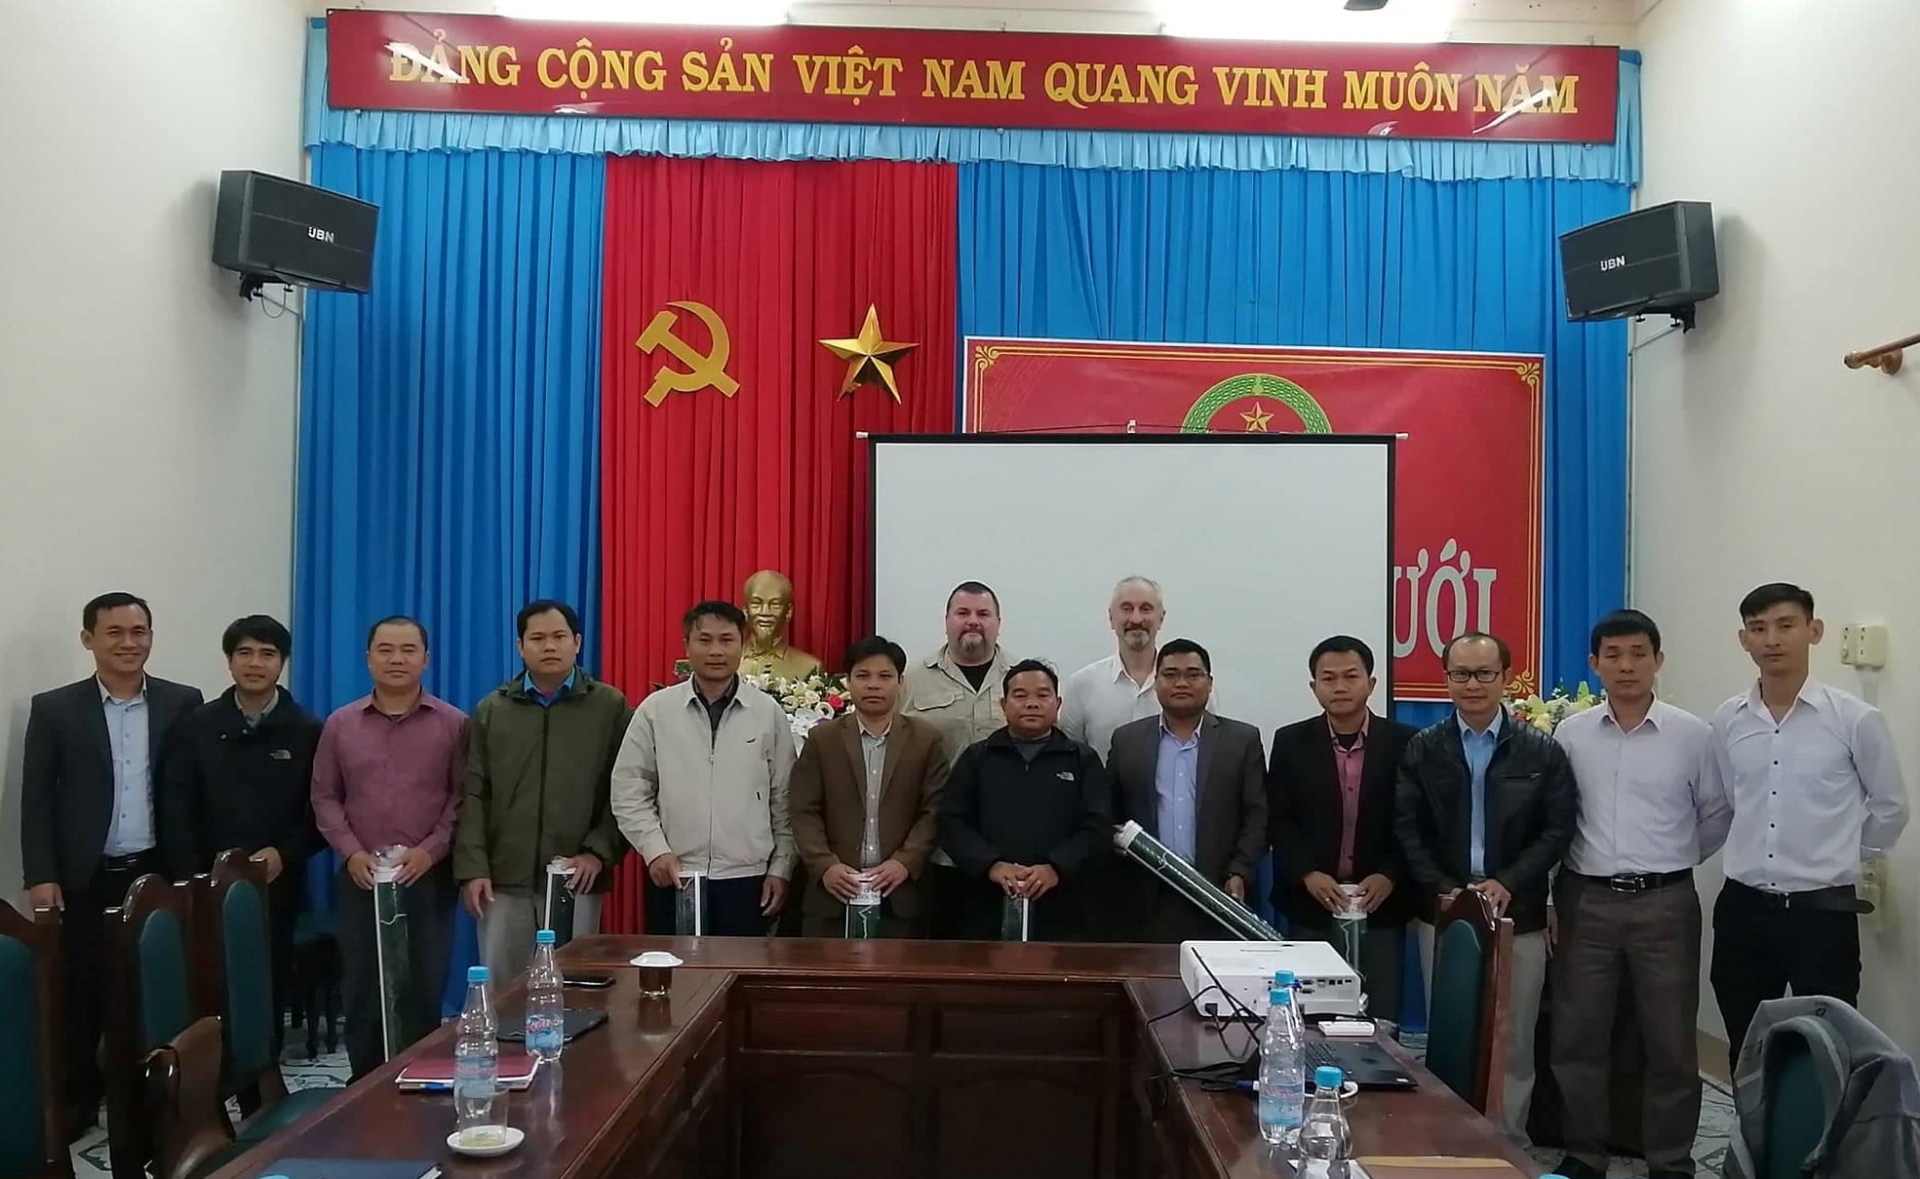 Mapping risk of uxp at a luoi district, thua thien hue province